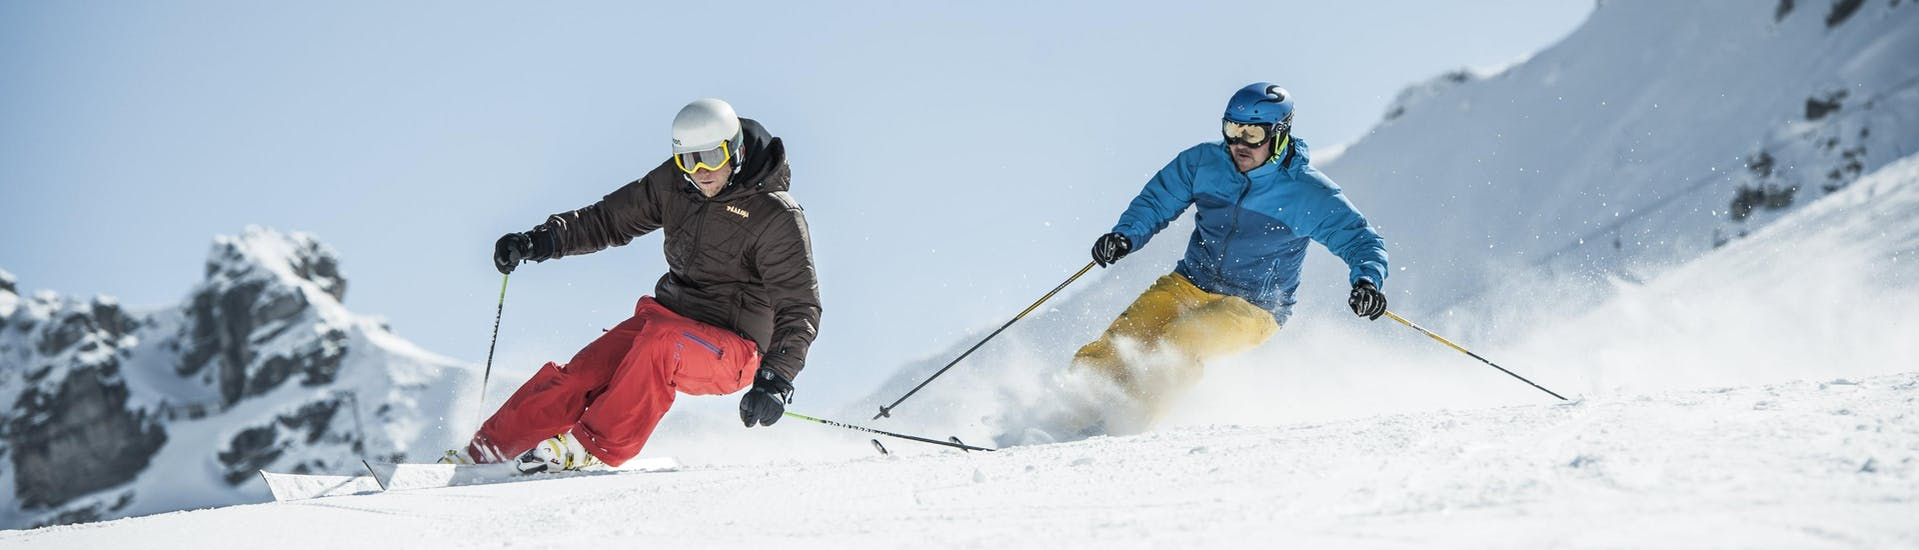 A skier practices the correct skiing technique during one of the private ski lessons in Val d'Isère.